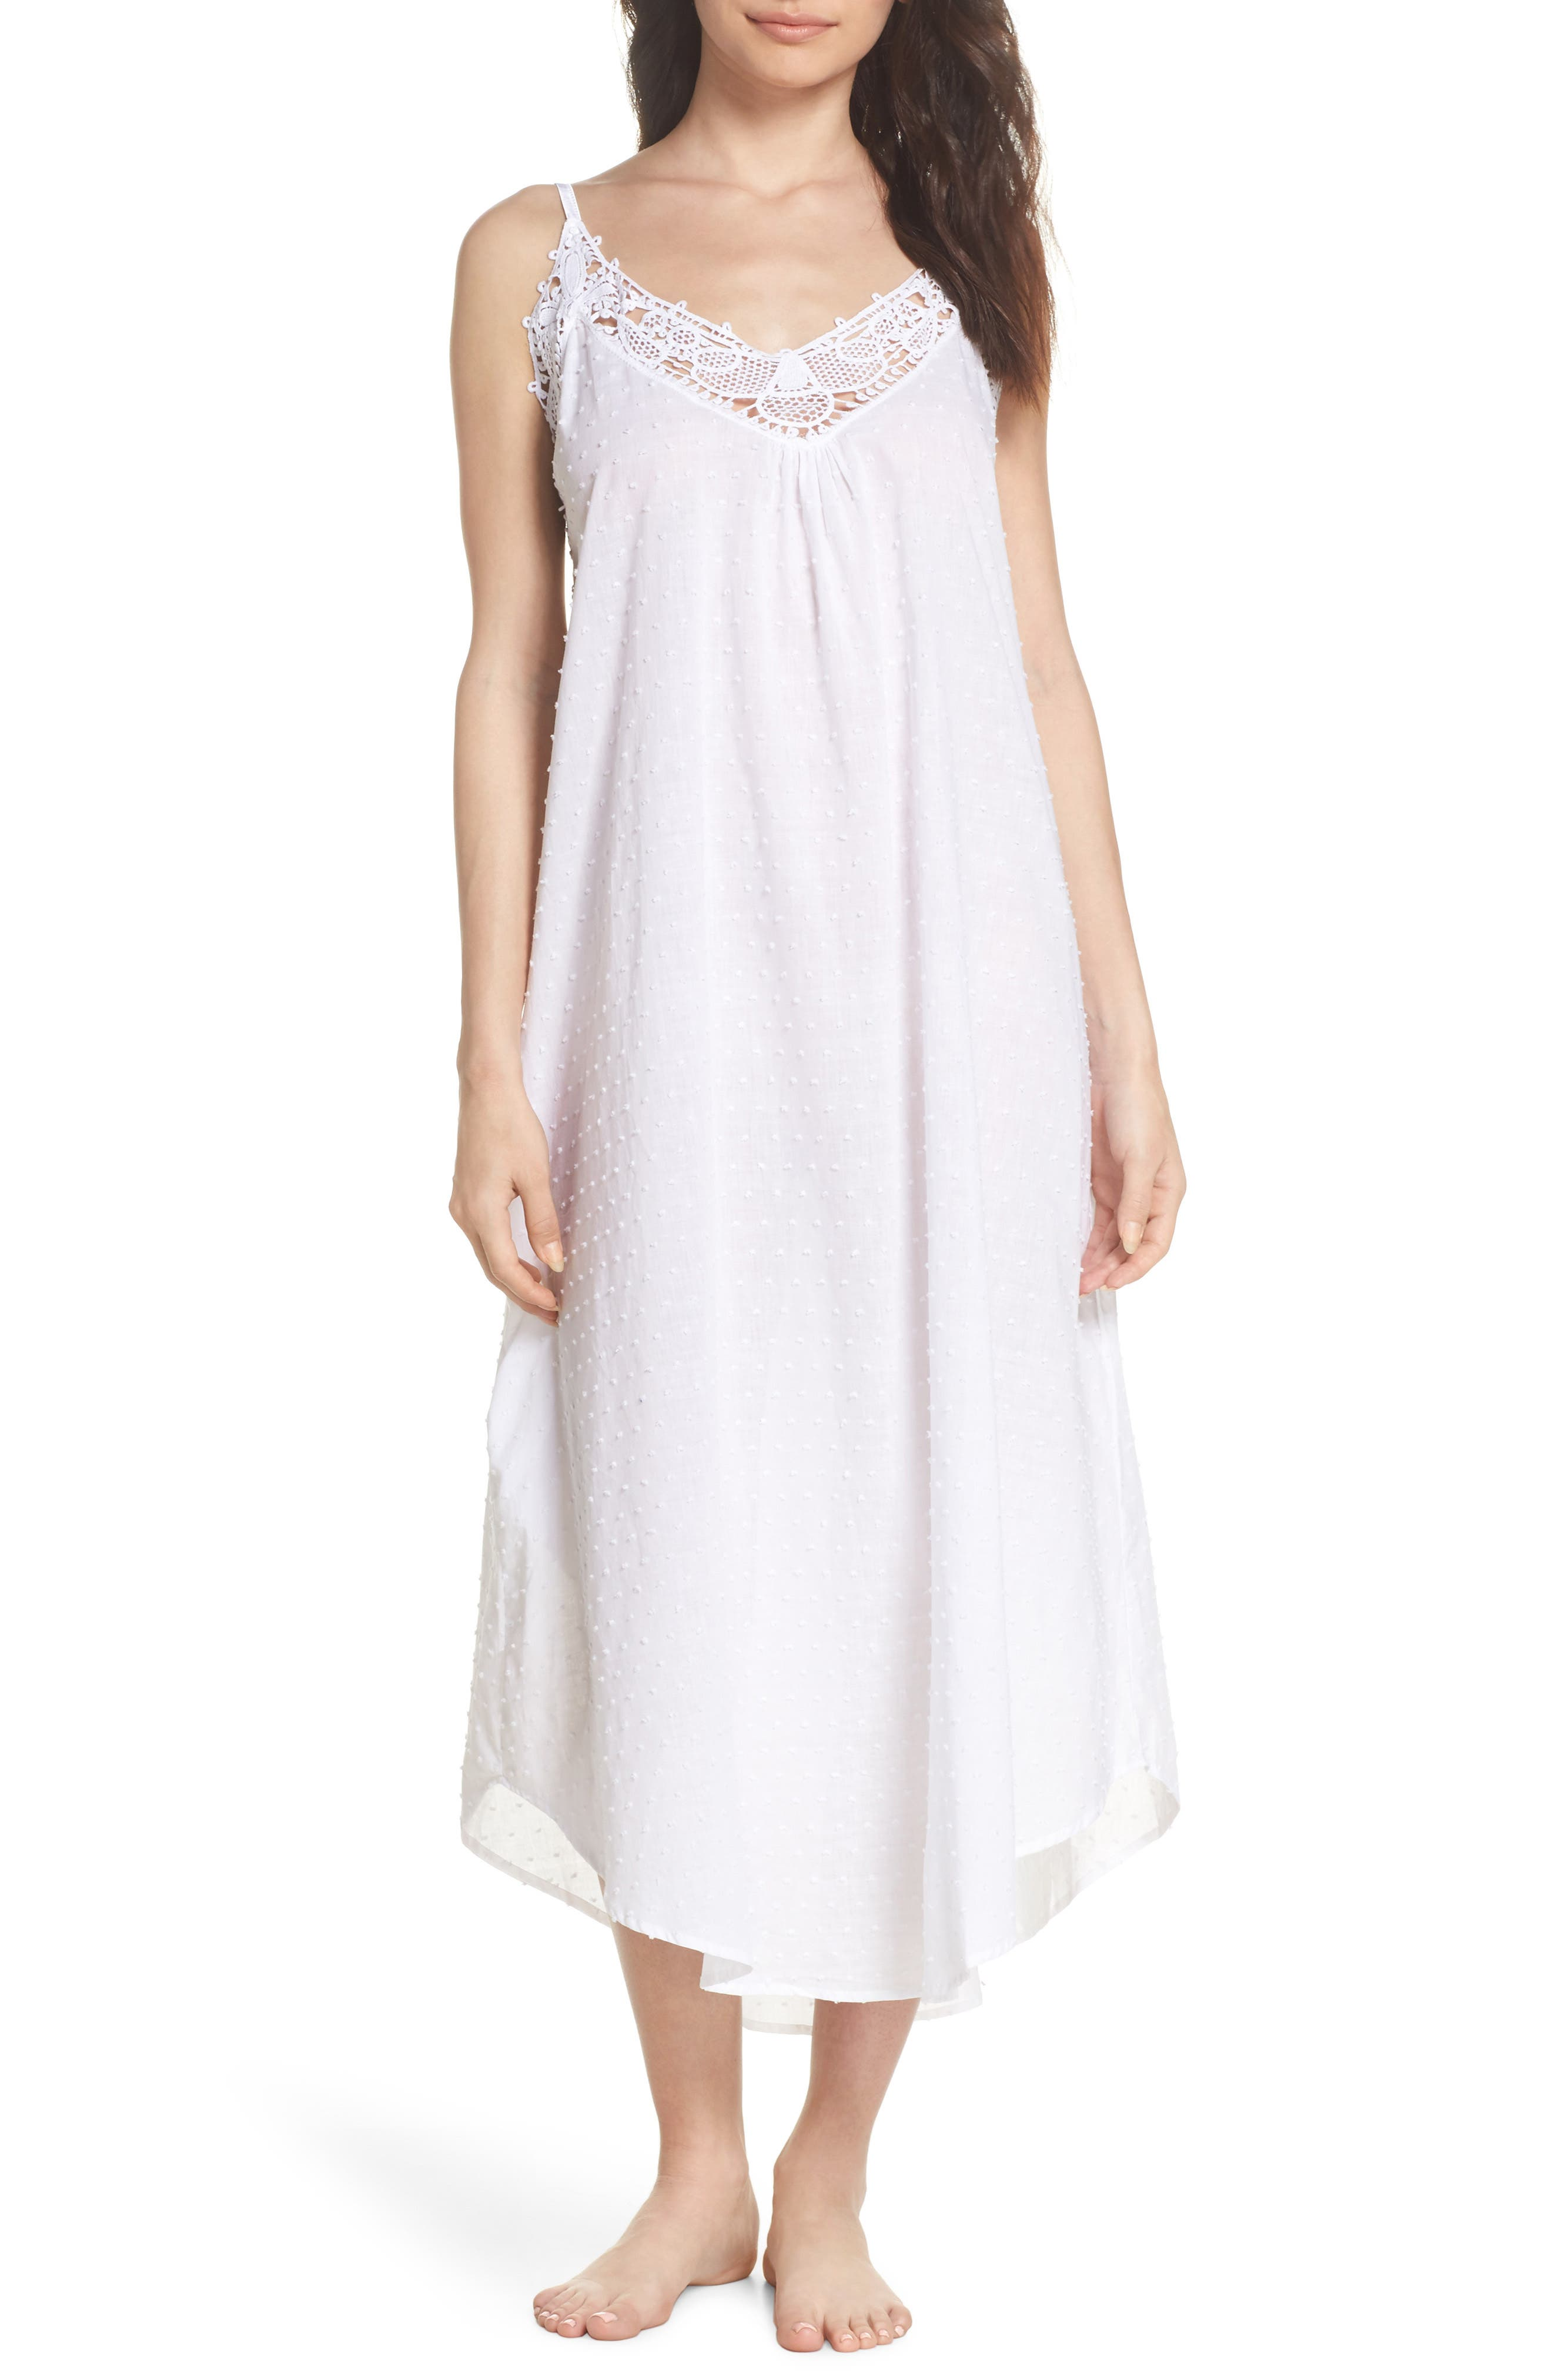 Swiss Dot Nightgown,                         Main,                         color,